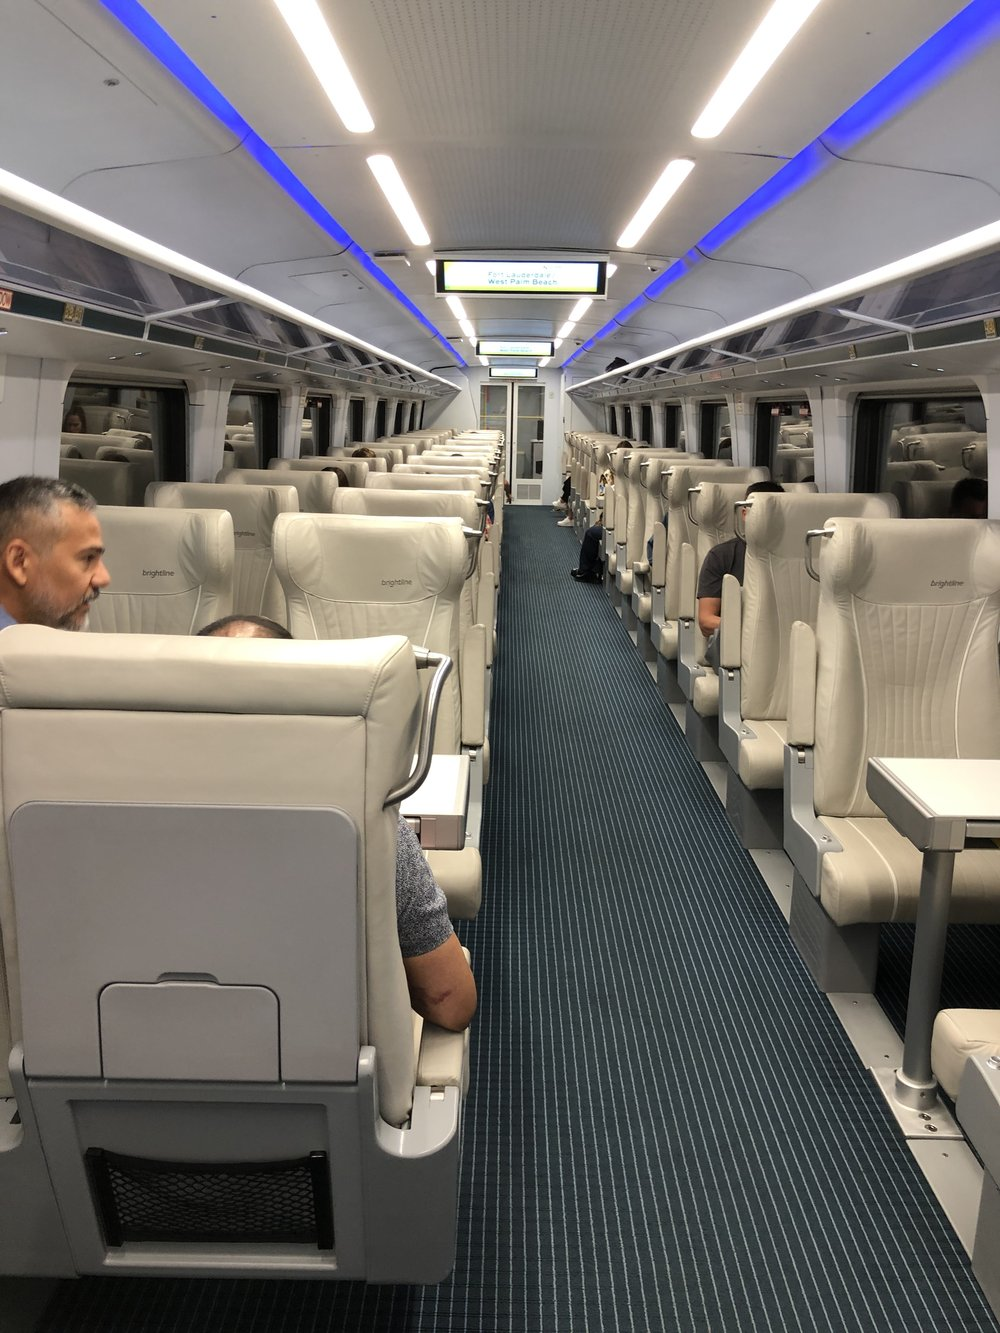 Select cabins offer one-abreat seating. Especially great for those traveling alone.